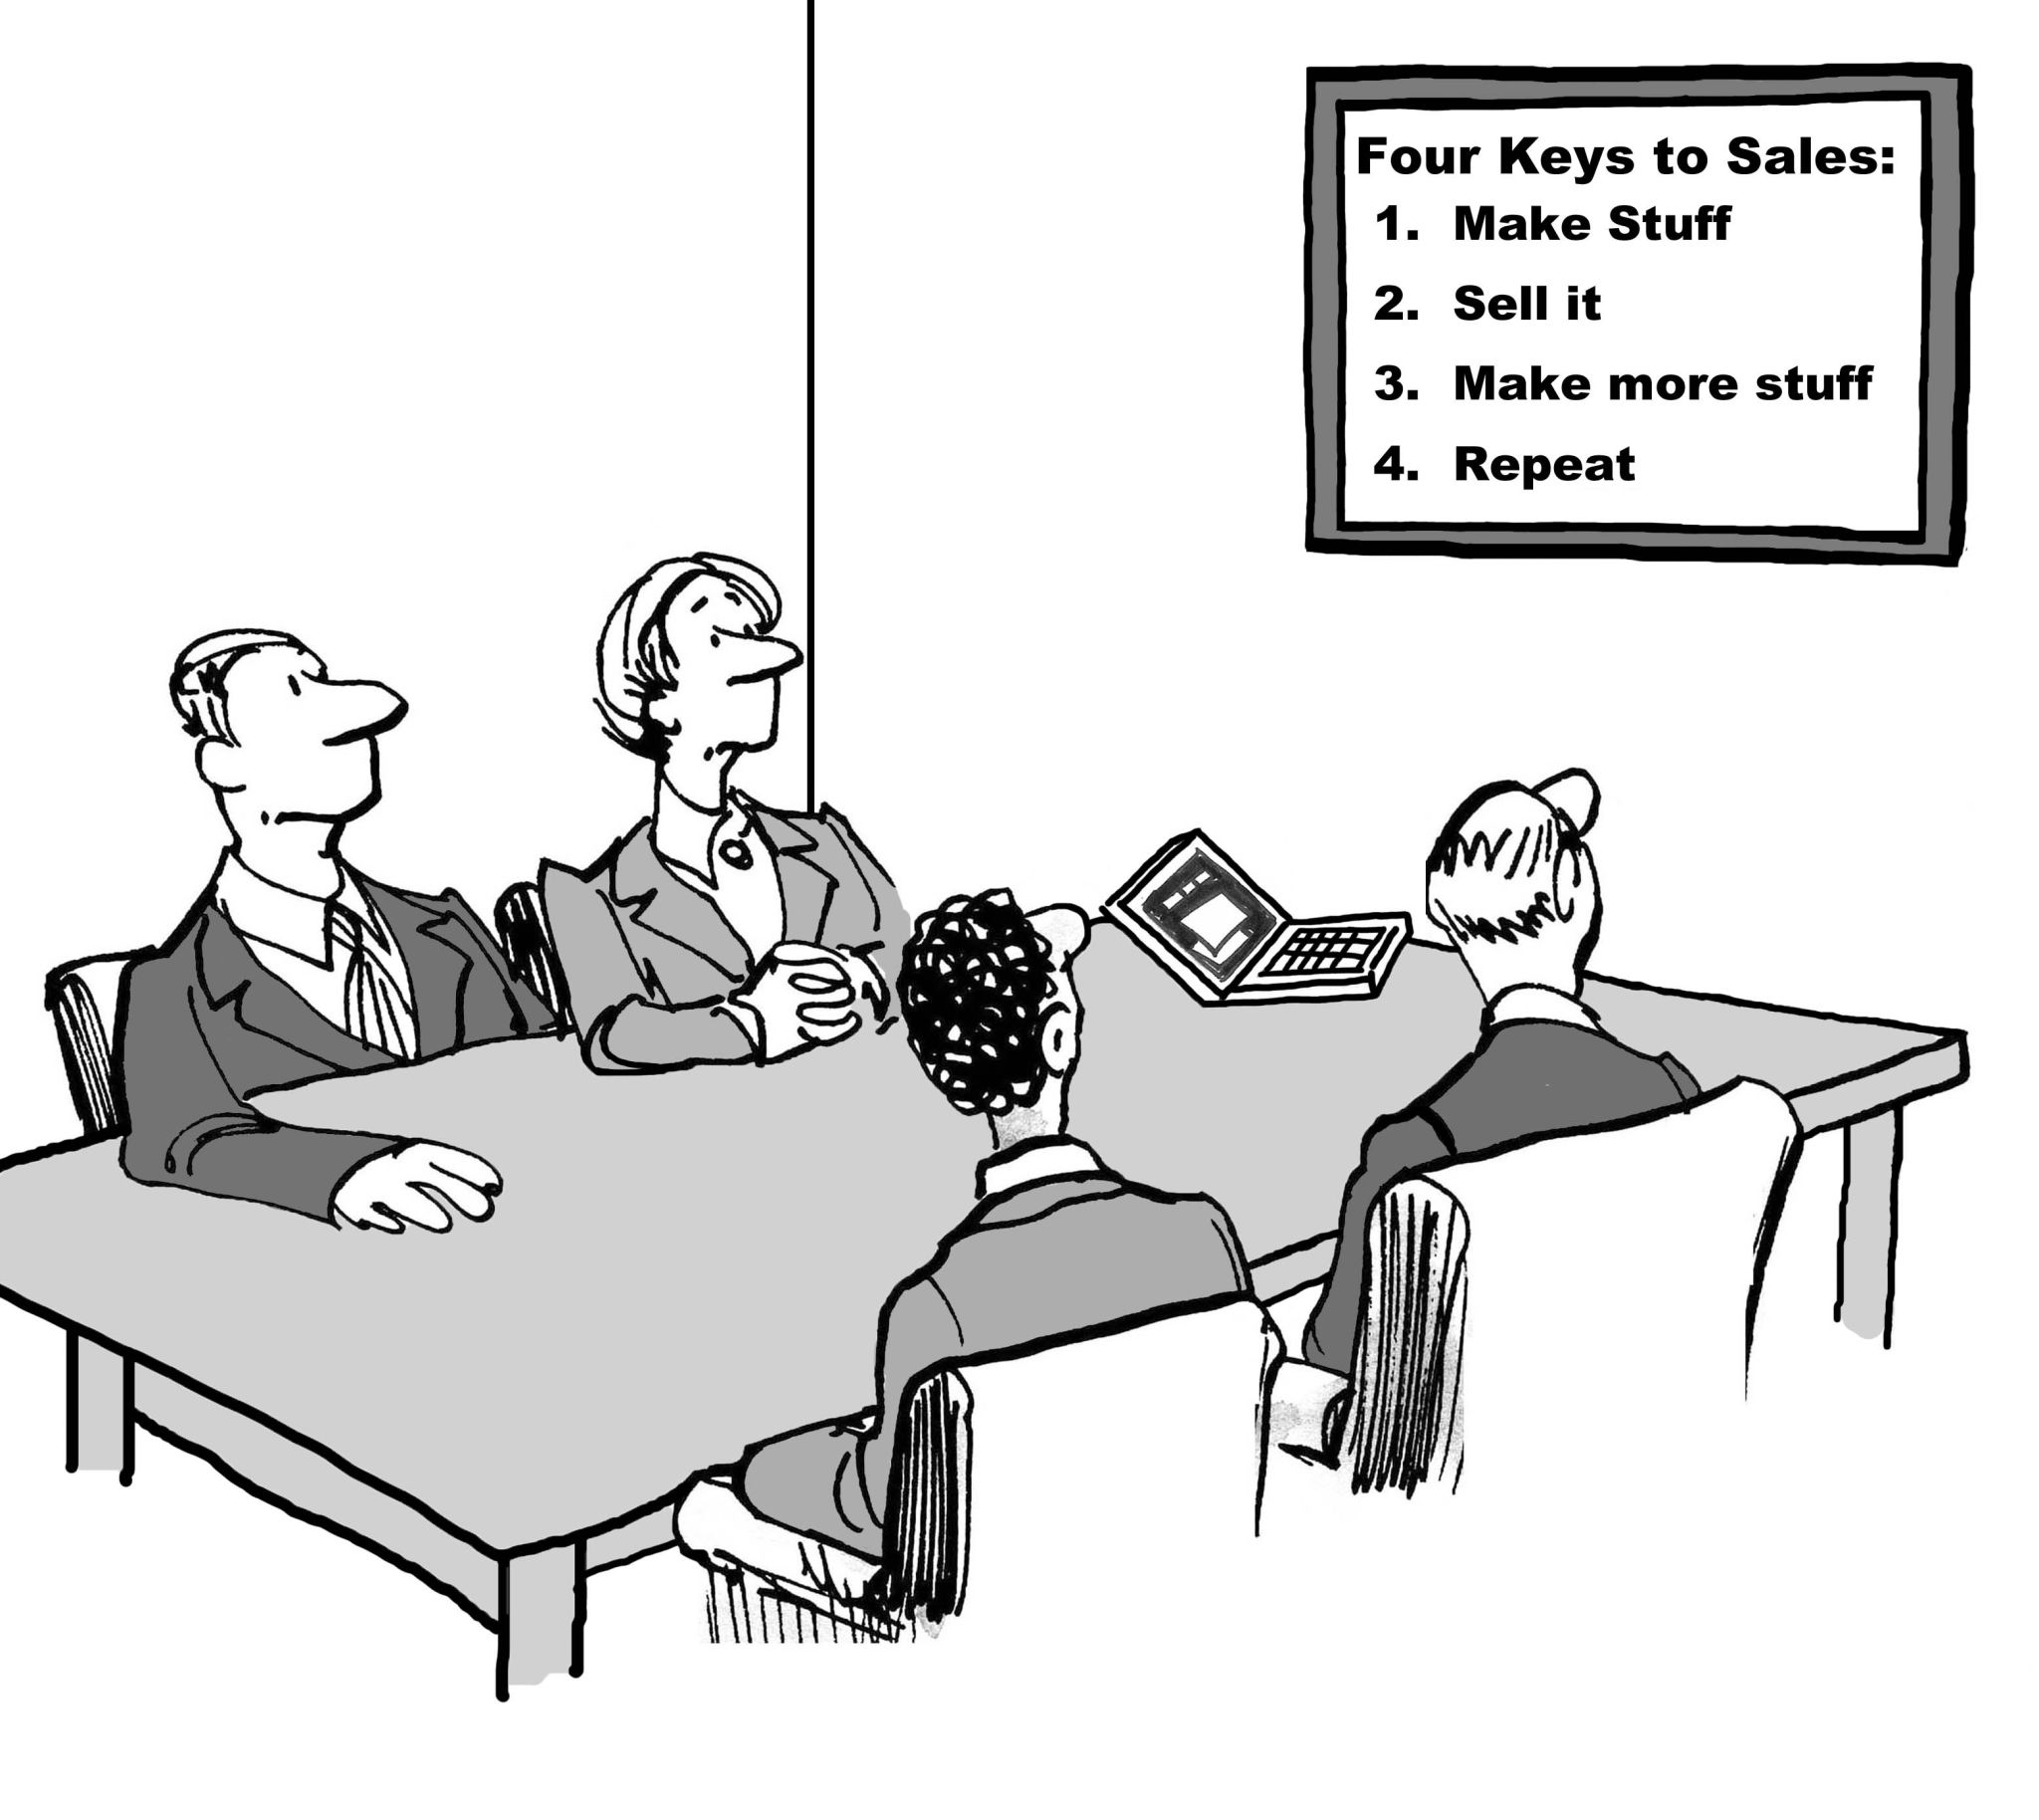 Cartoon of business people in a meeting looking at a chart that has the four keys to sales.